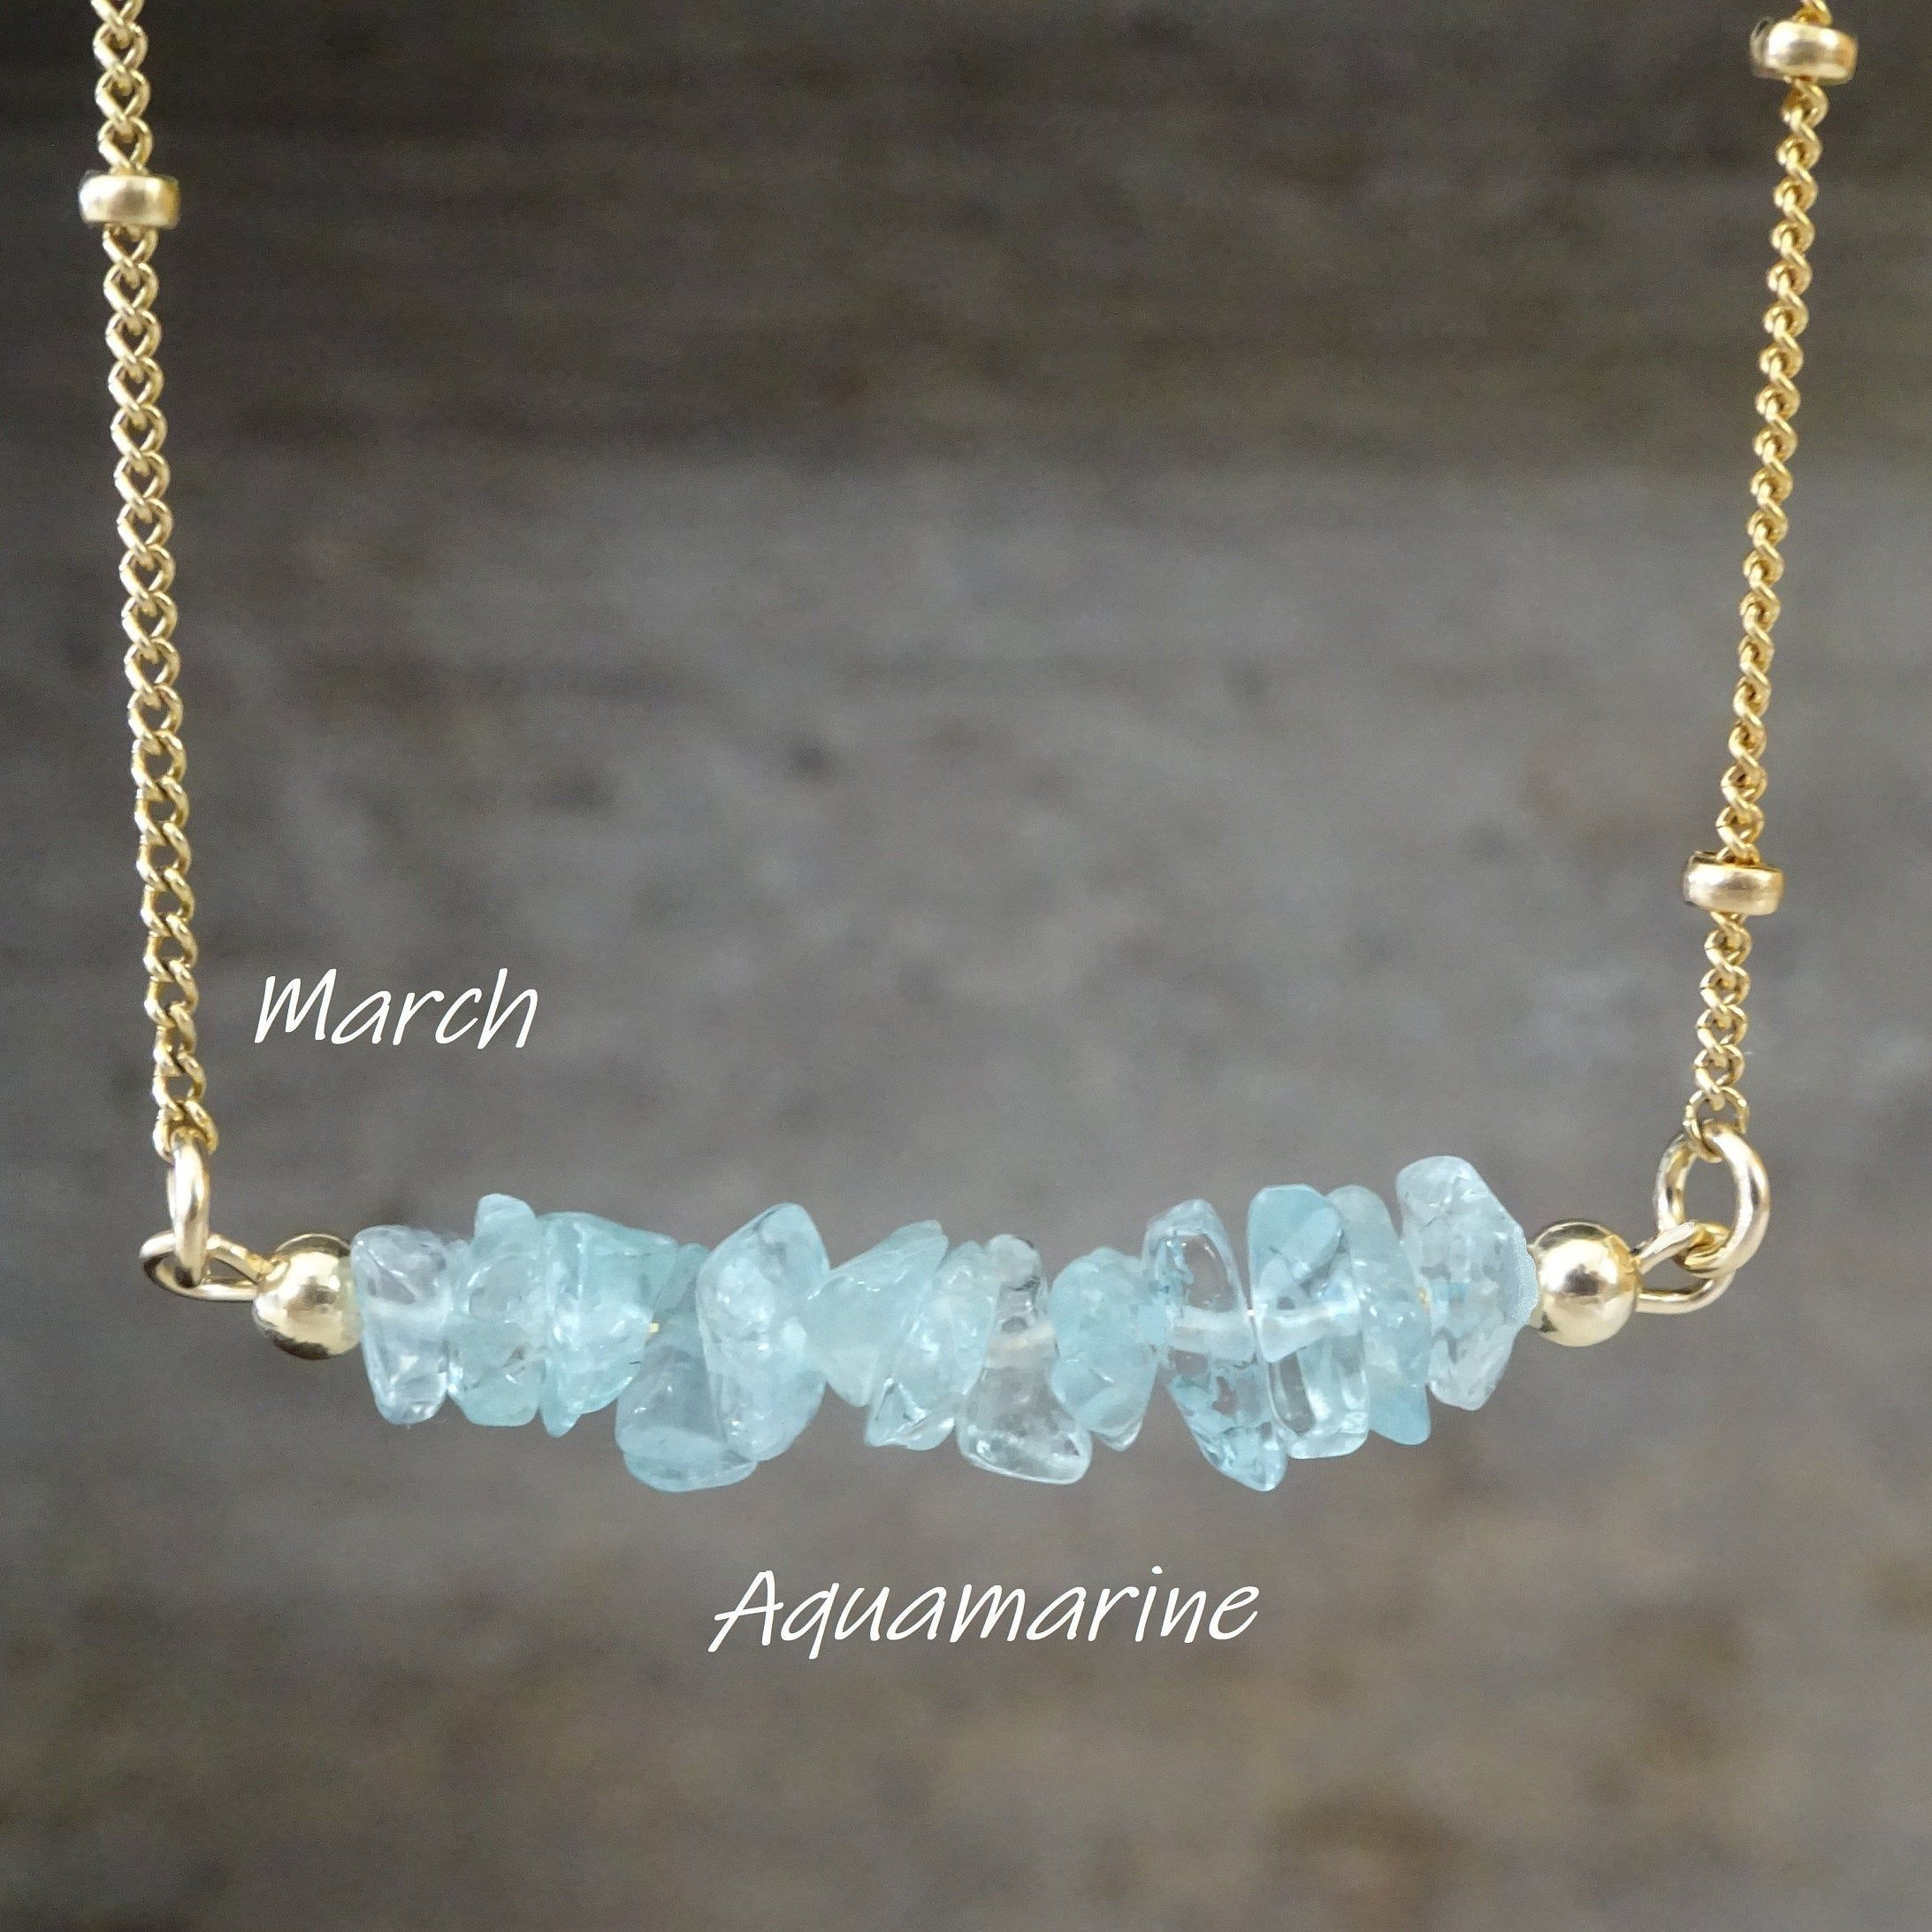 Photo of Aquamarine Raw Crystal Necklace, Pisces zodiac neckalce, March Birthstone ,Birthday Gifts, Natural Stone Pendant, Necklace for women